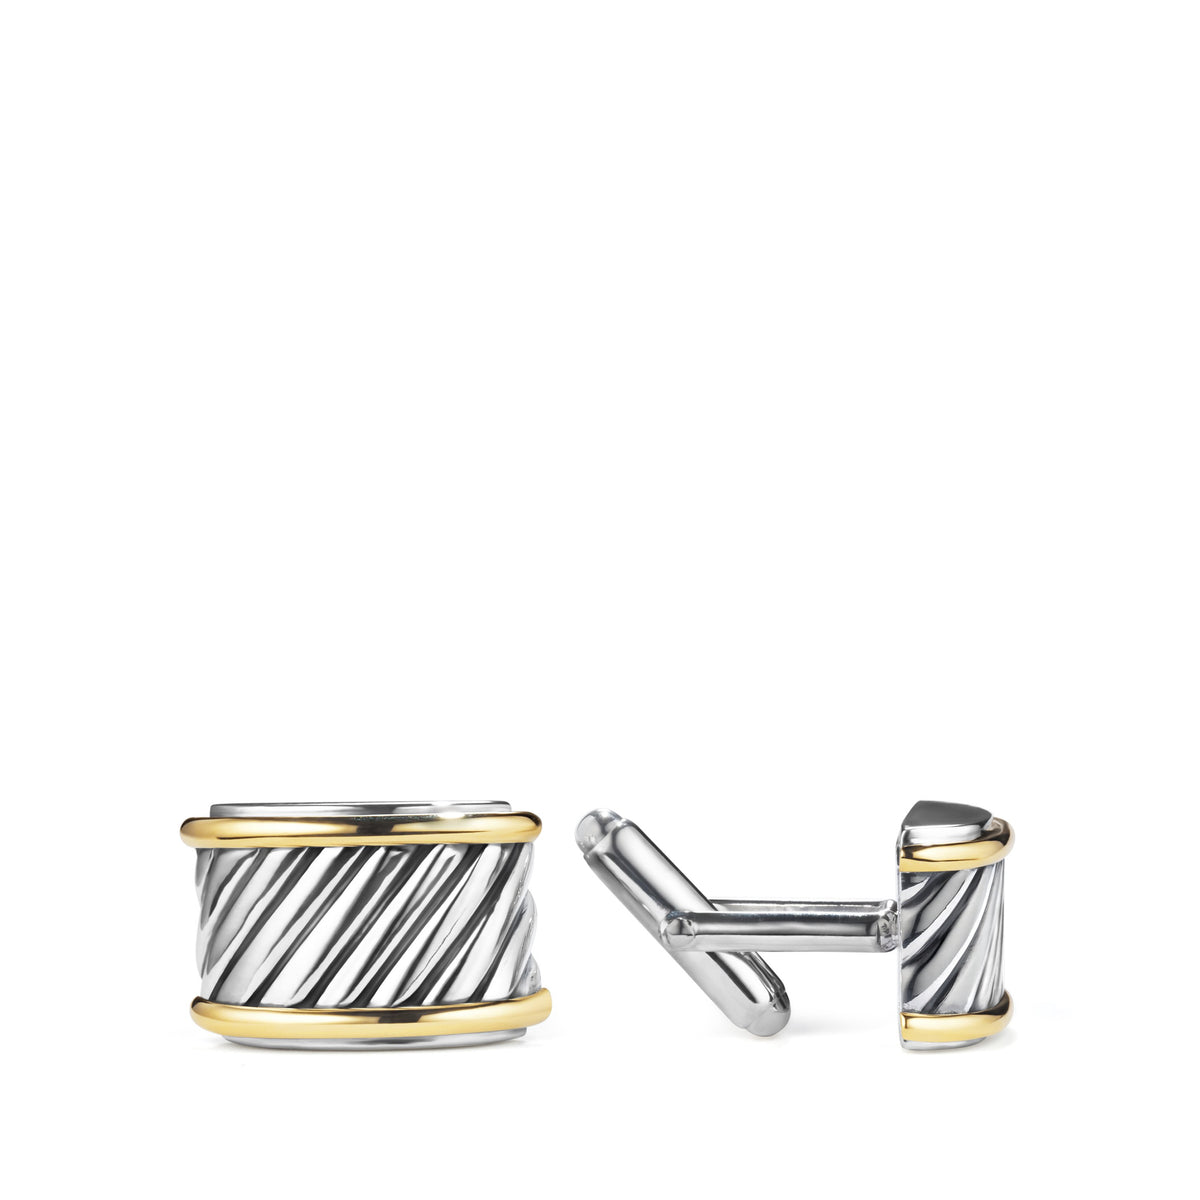 Cable Cigar Band Cufflinks with 14K Gold